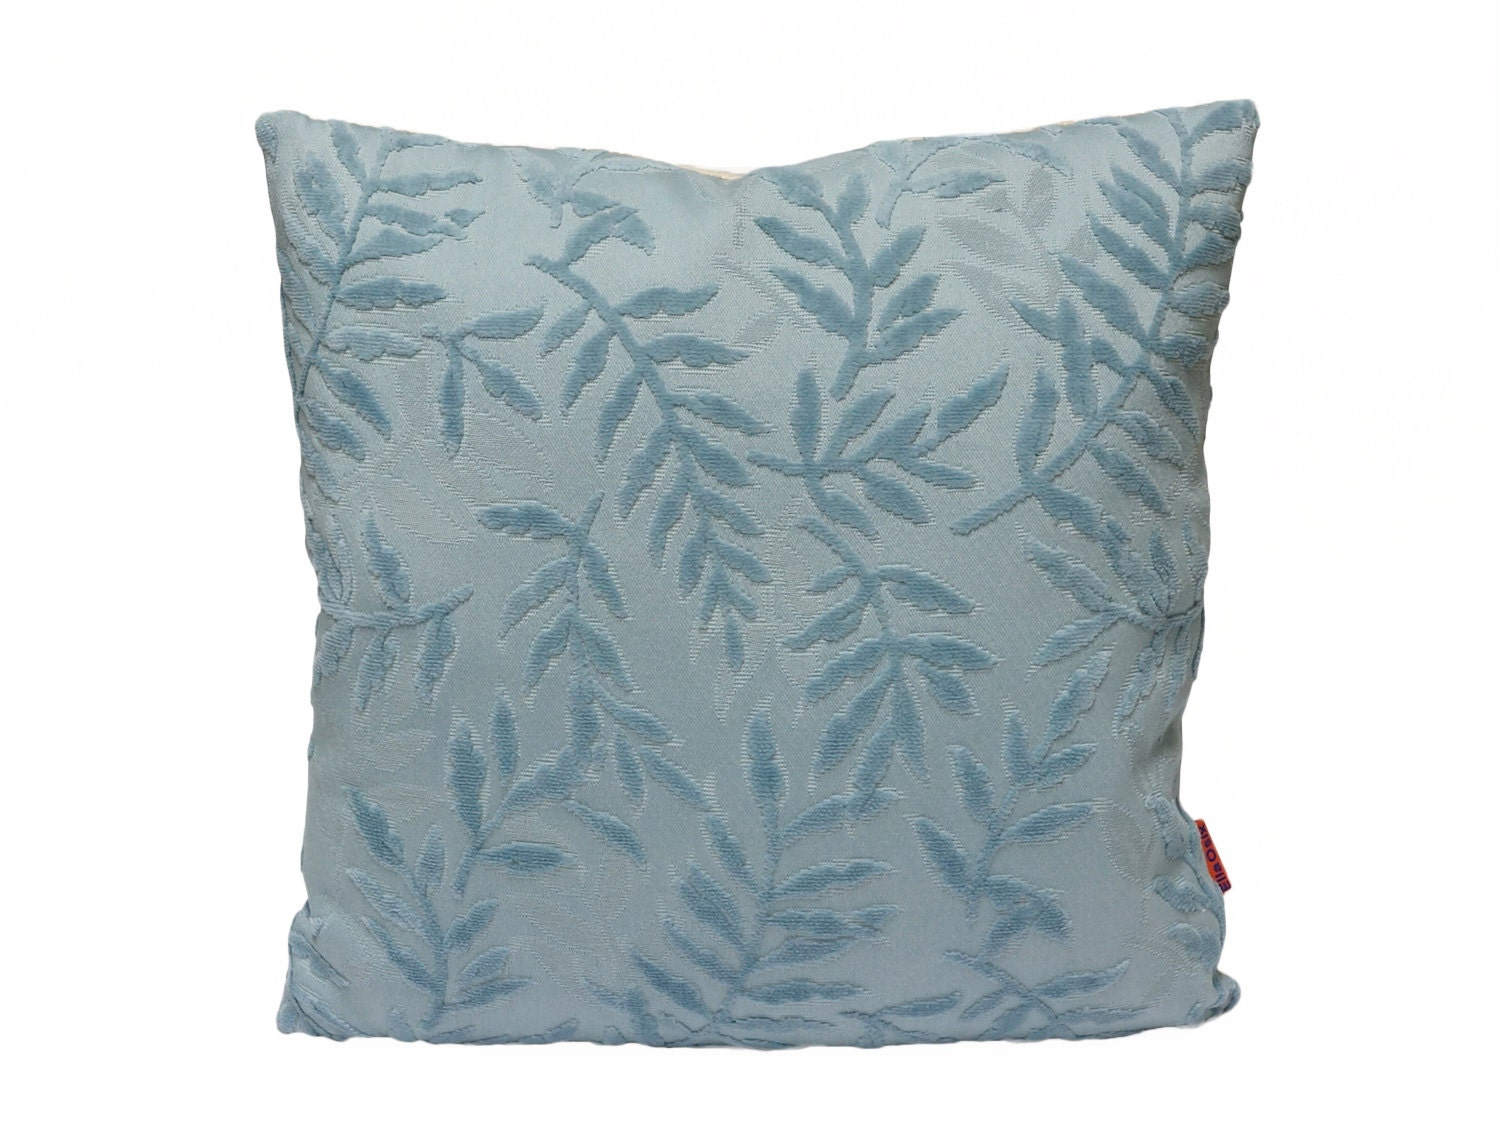 Throw Pillows Lowes : Luxury Blue Velvet Pillow throw pillow decorative pillow